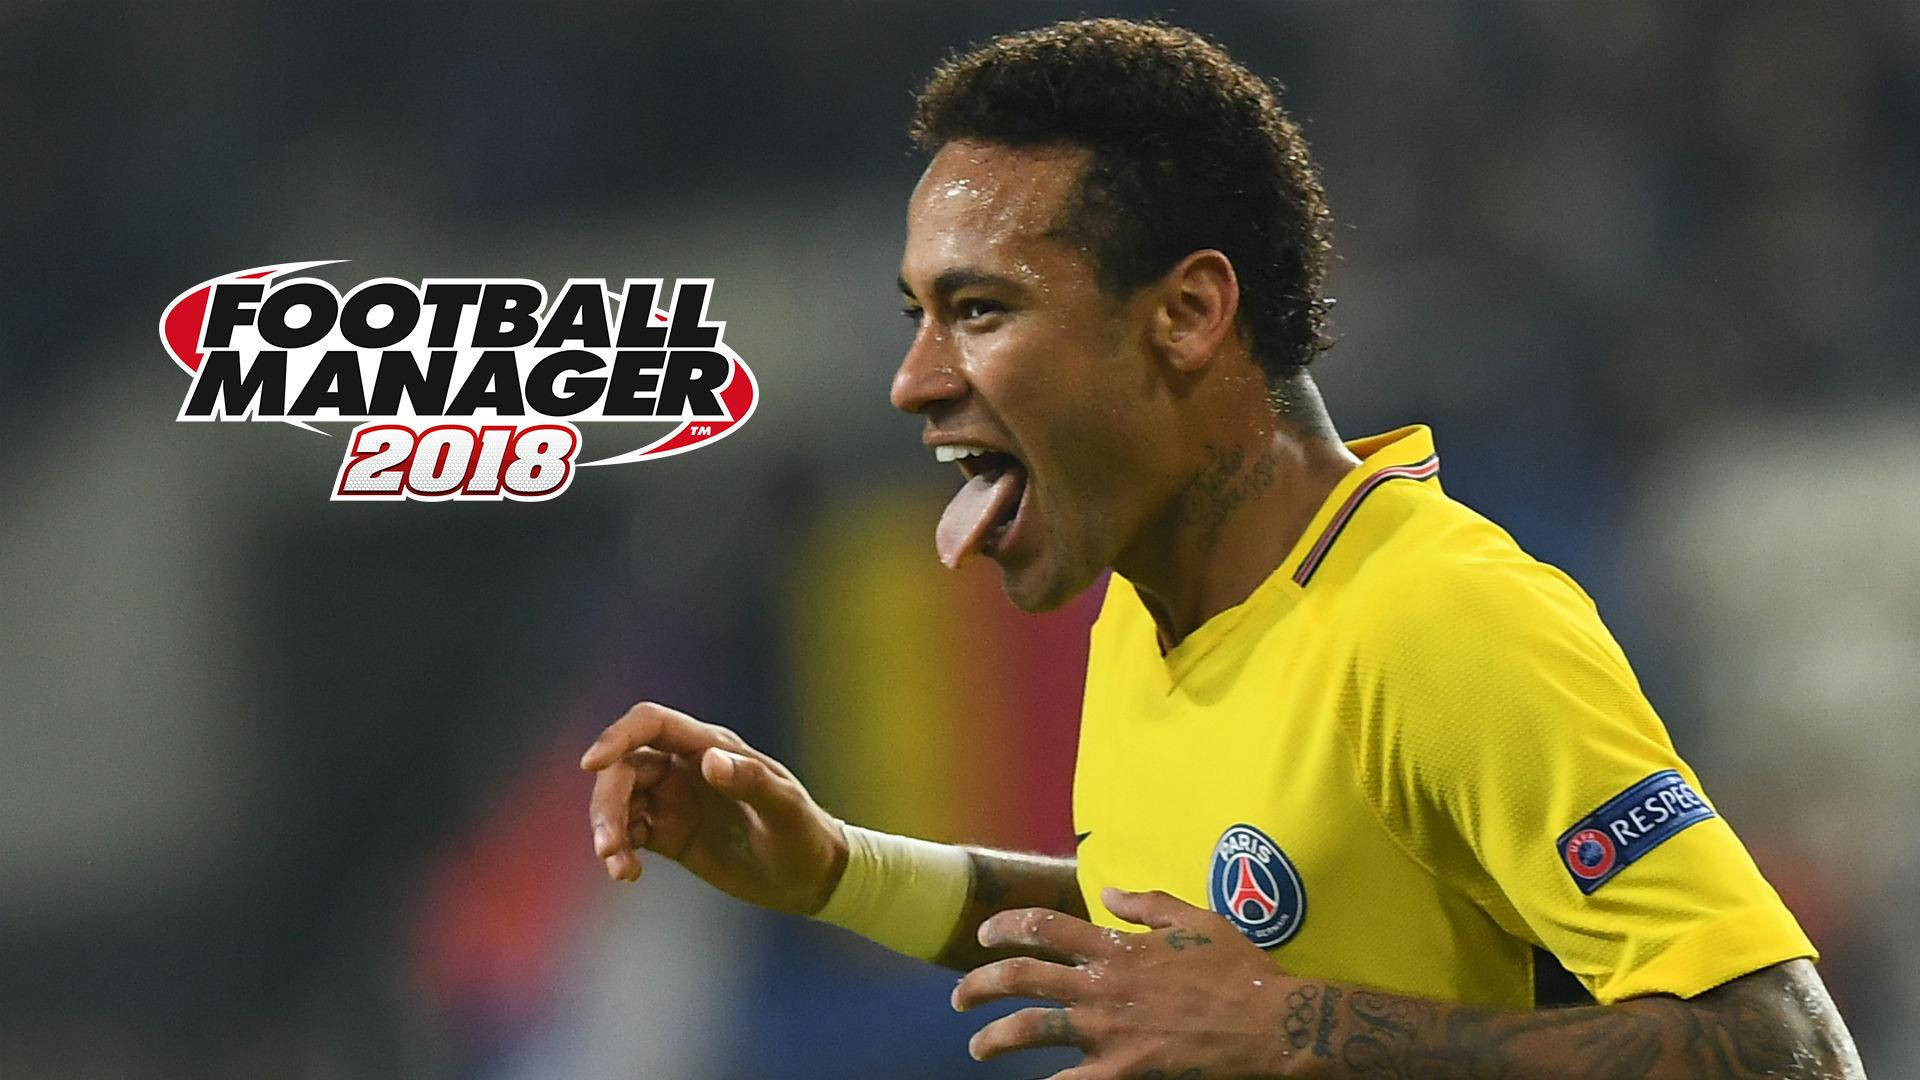 Football Manager 2018: Neymar, Messi & the most expensive ...